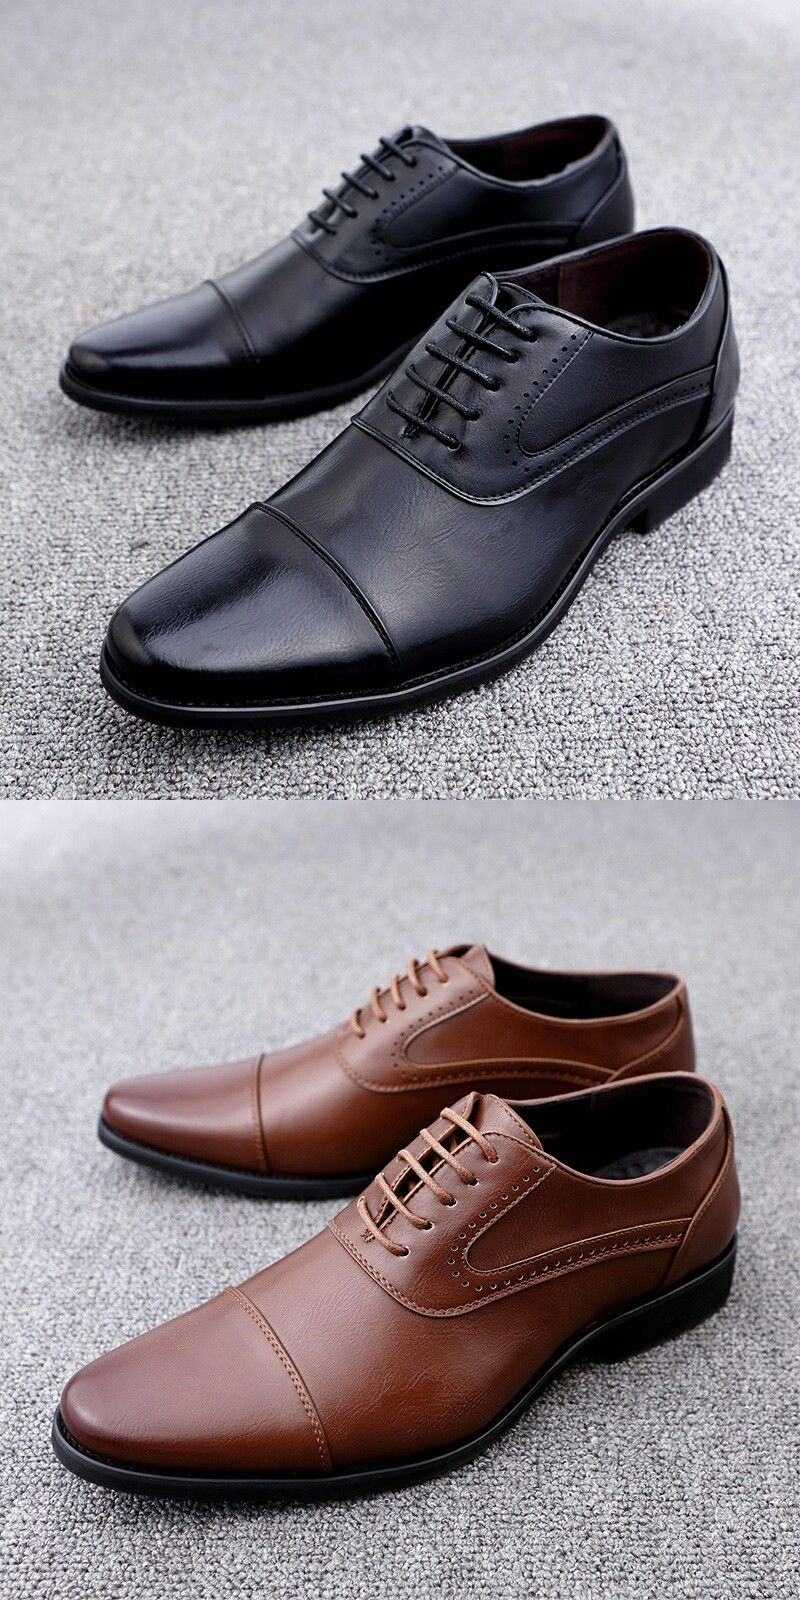 High Quality Lace Up Men Leather Shoes Wedding Party Office Wingtip Brogue is part of Leather shoes men, Dress shoes men, Mens smart shoes, Mens fashion smart, Mens boots fashion, Best shoes for men -